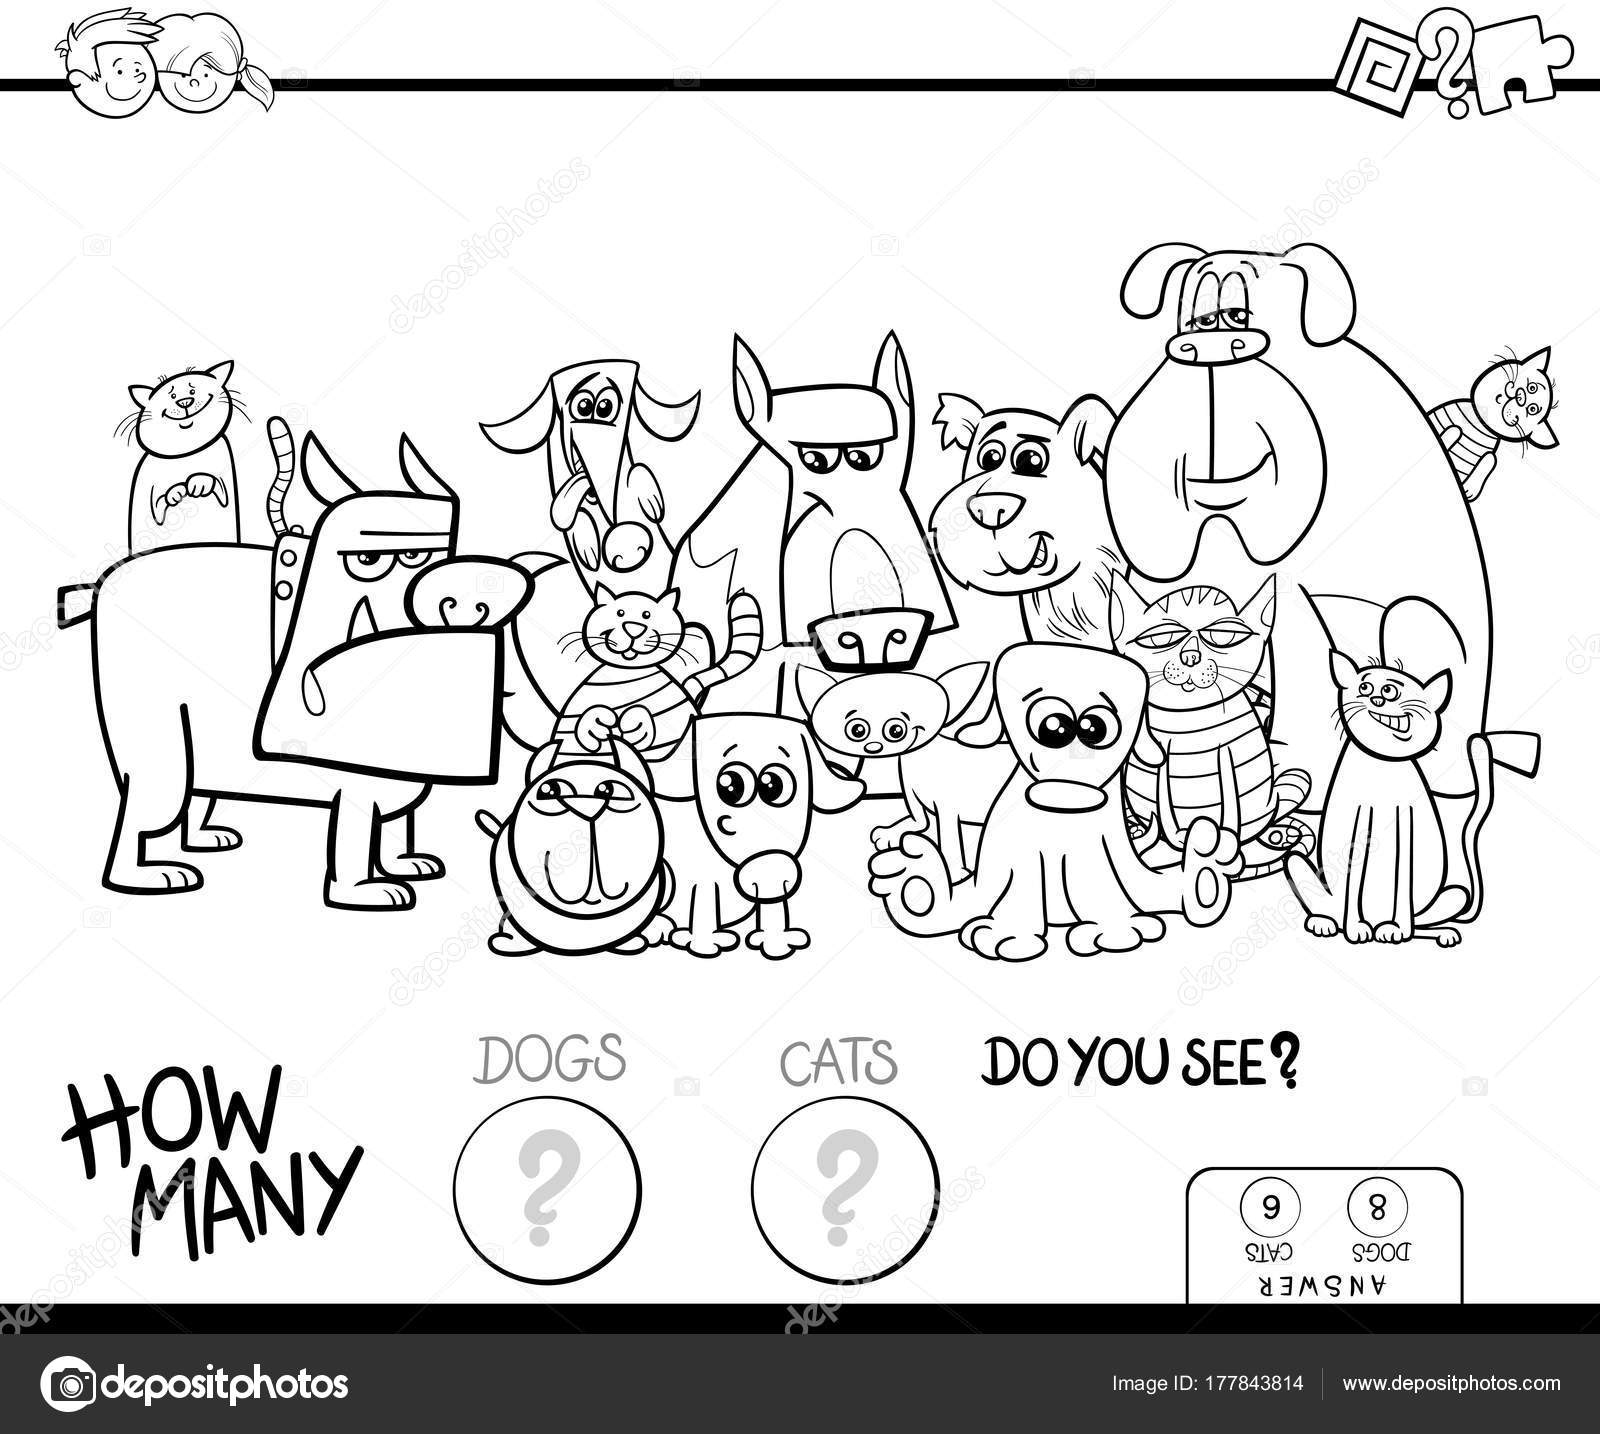 Black And White Cartoon Illustration Of Educational Counting Game For Children With Cats Dogs Domestic Animals Funny Characters Group Coloring Book